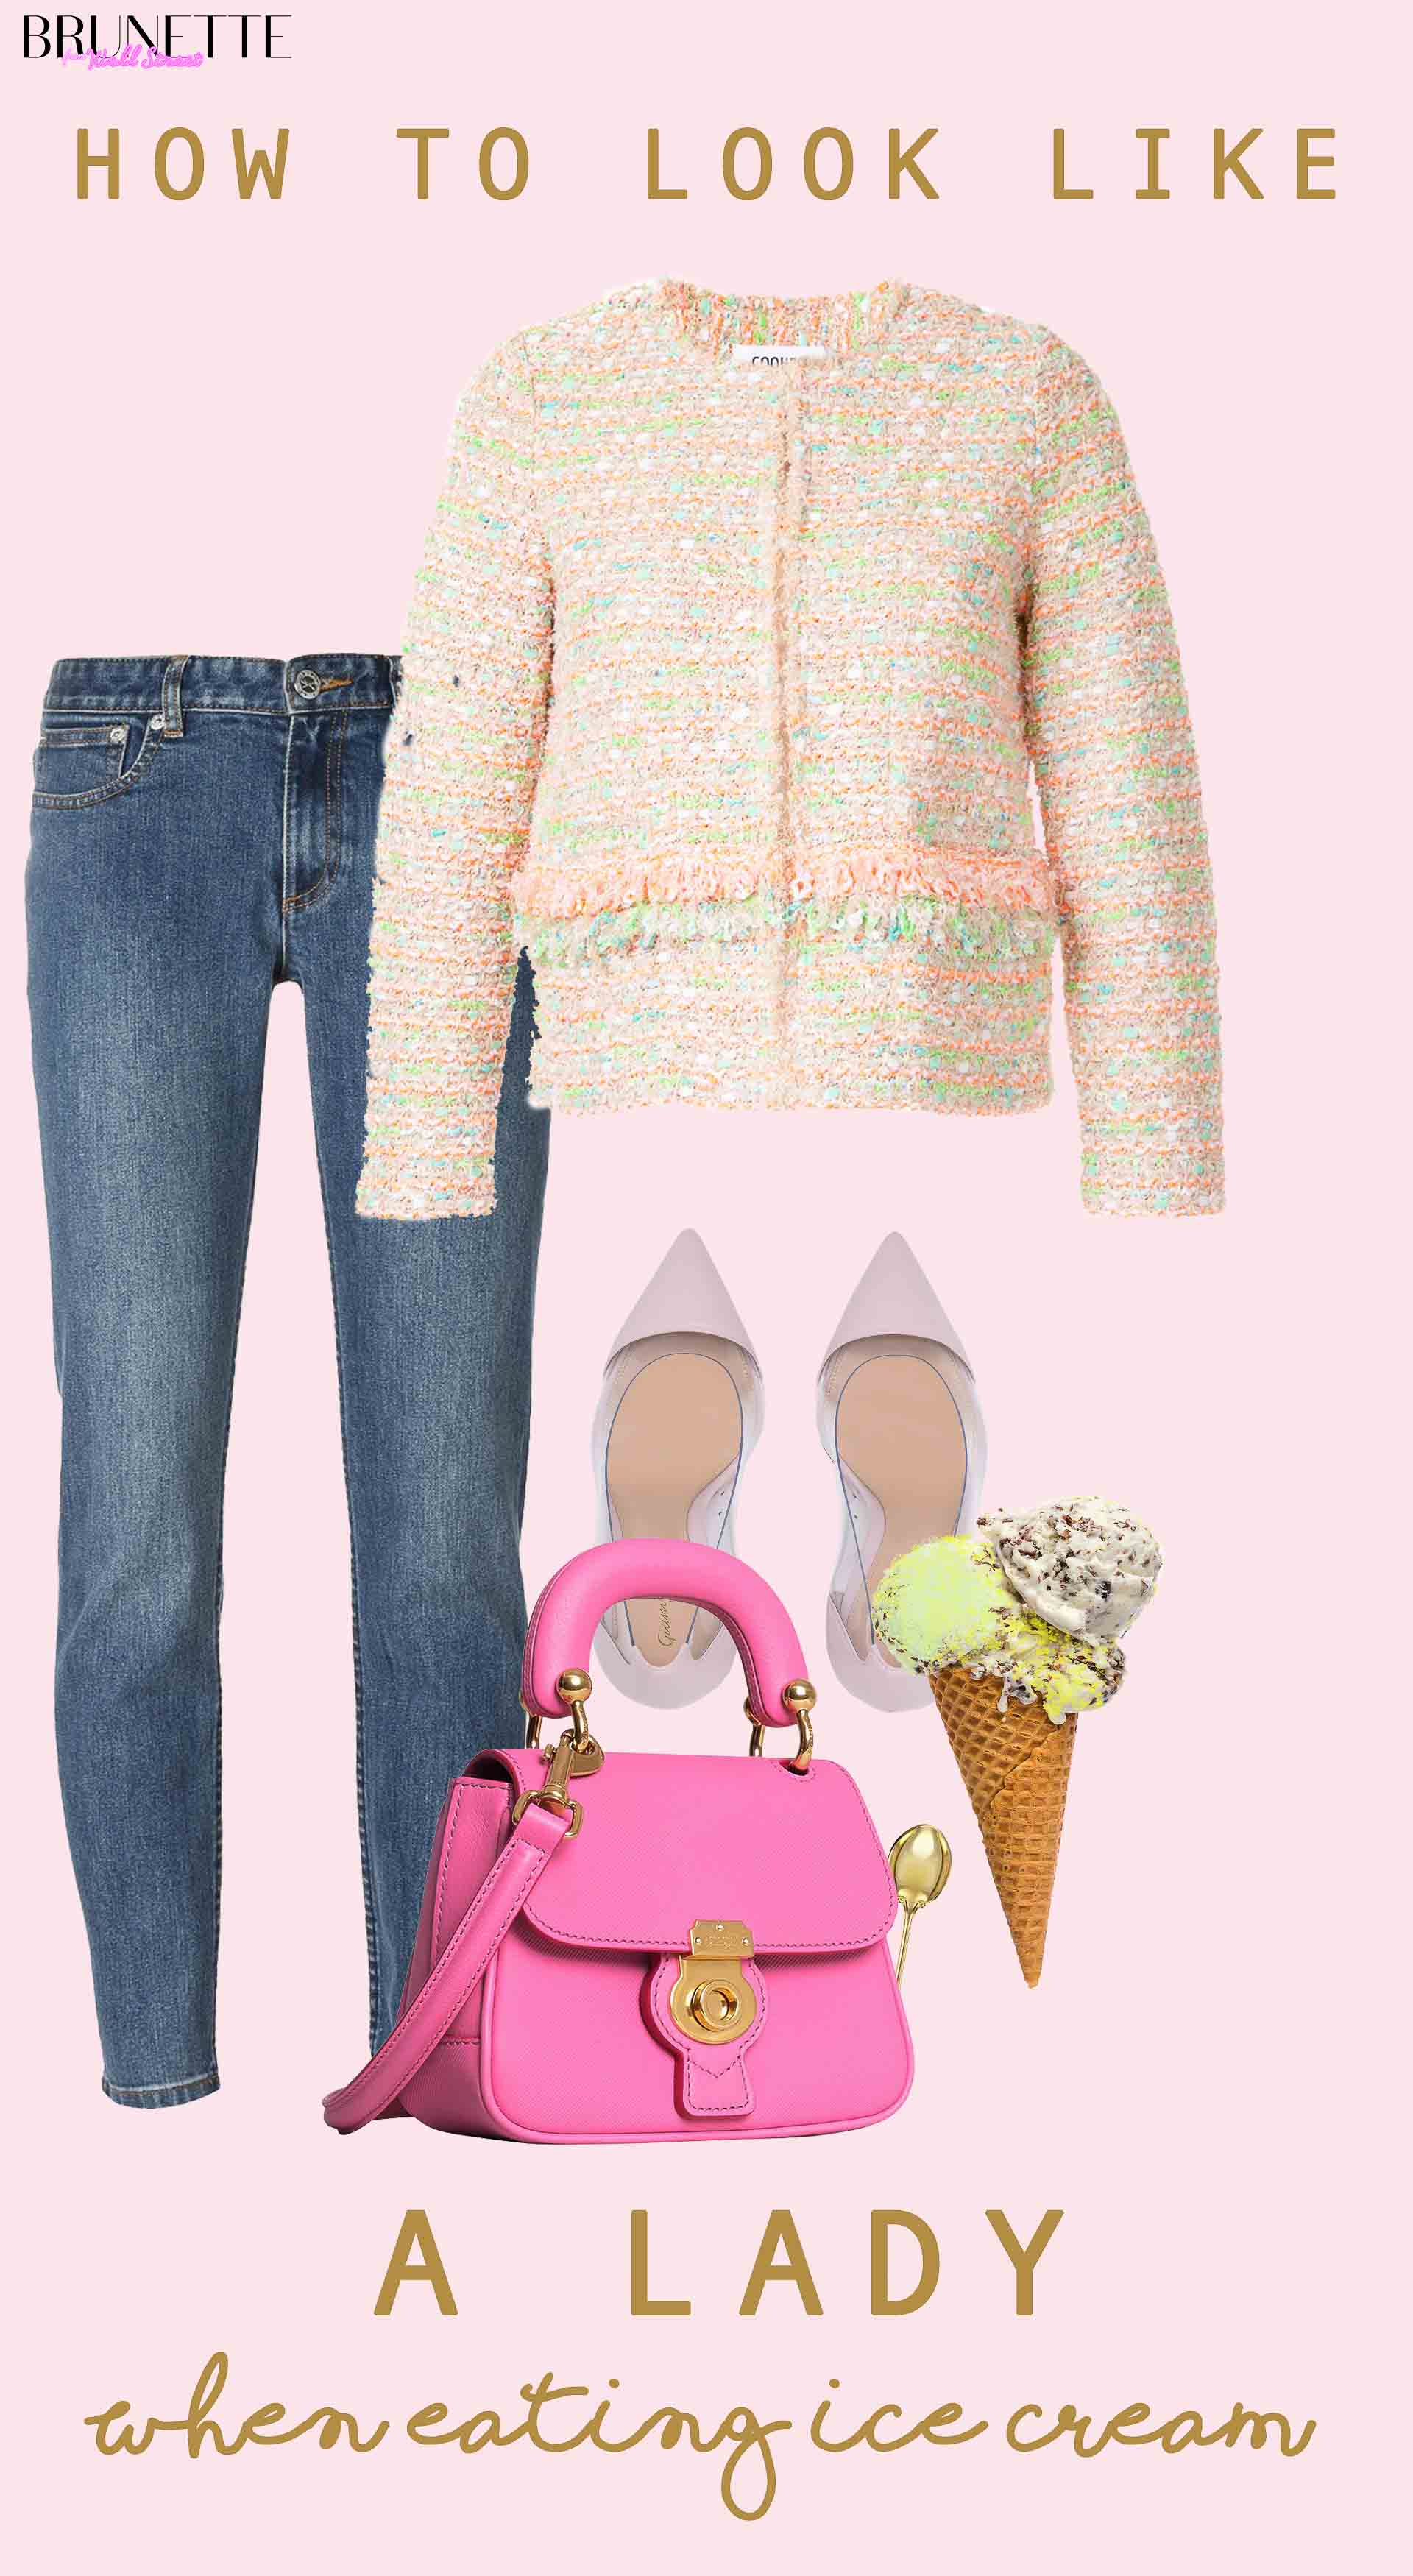 spring outfit with text overlay How to look like a lady when eating ice cream